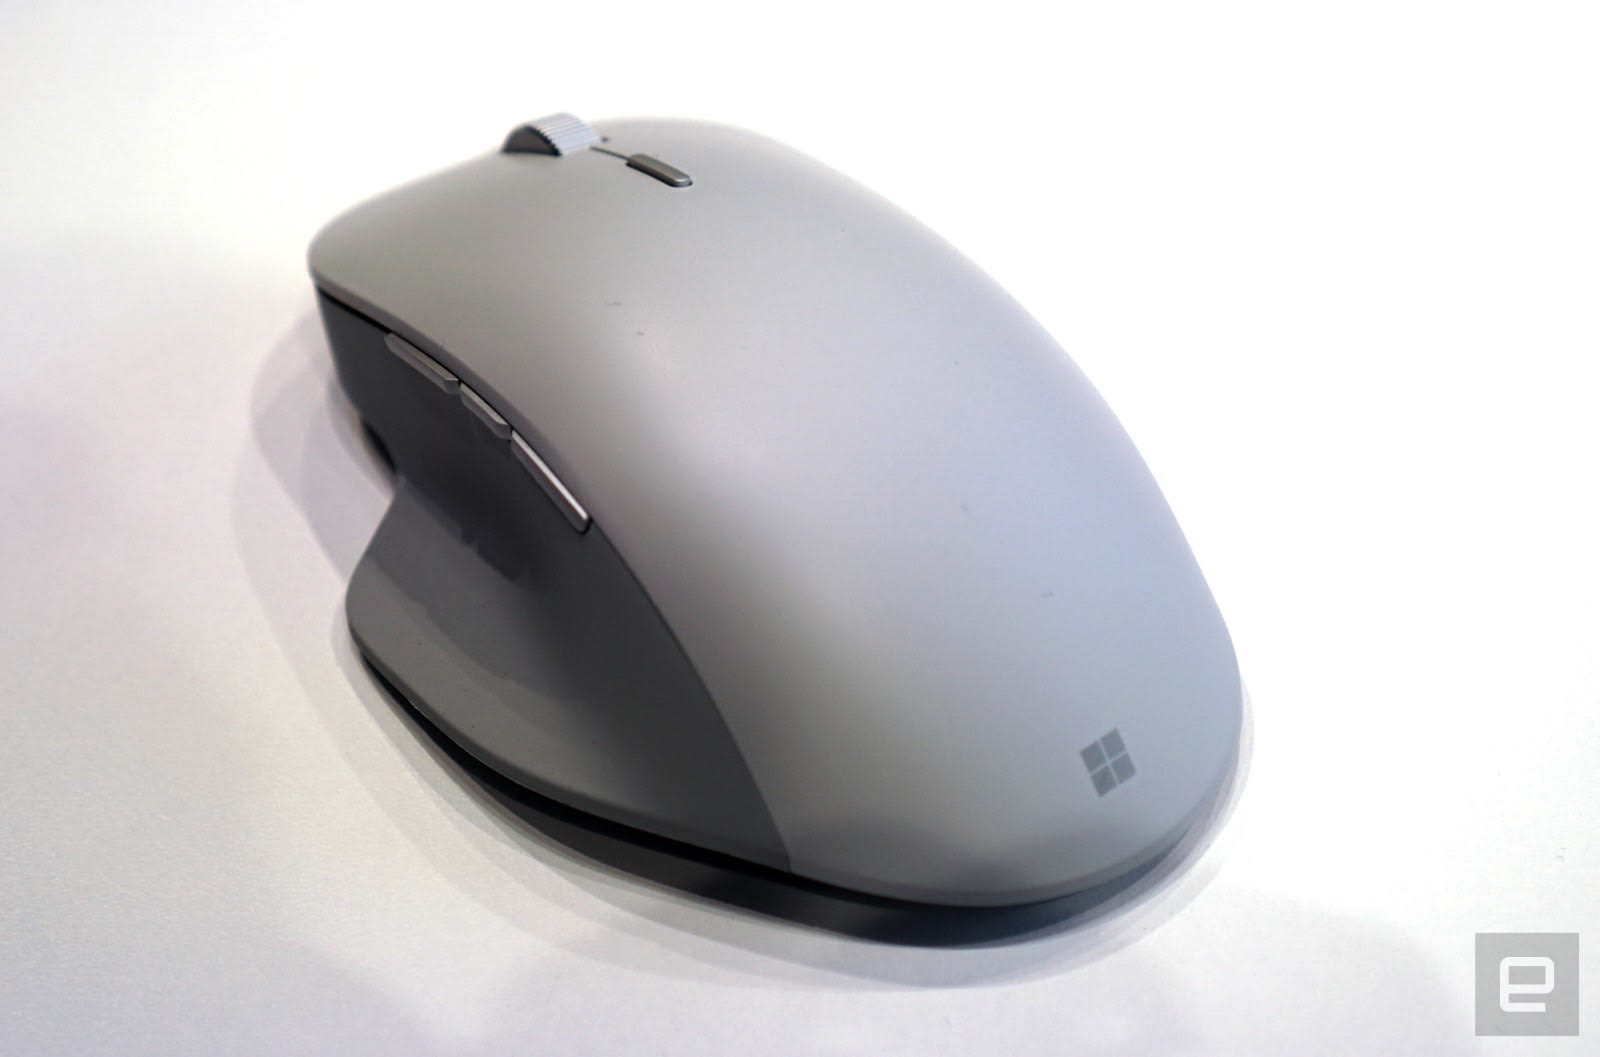 Microsoft's Precision Surface Mouse focuses on ergonomics